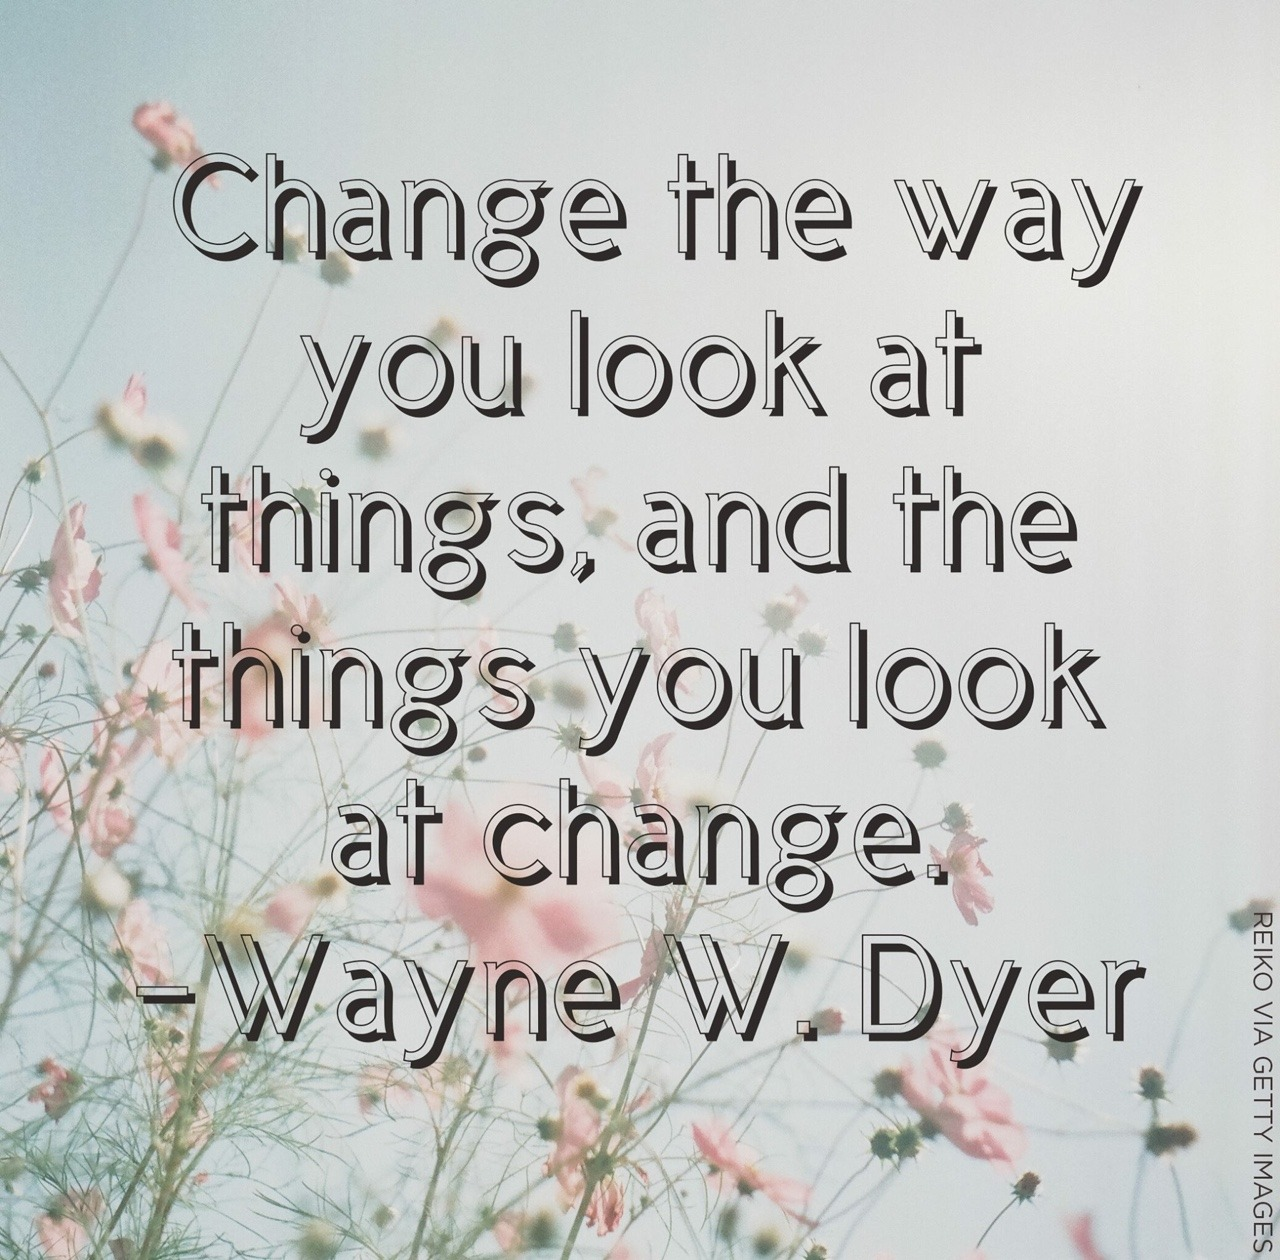 Quotes Of Wisdom Tumblr: #Wisdom #Quote: Change The Way You